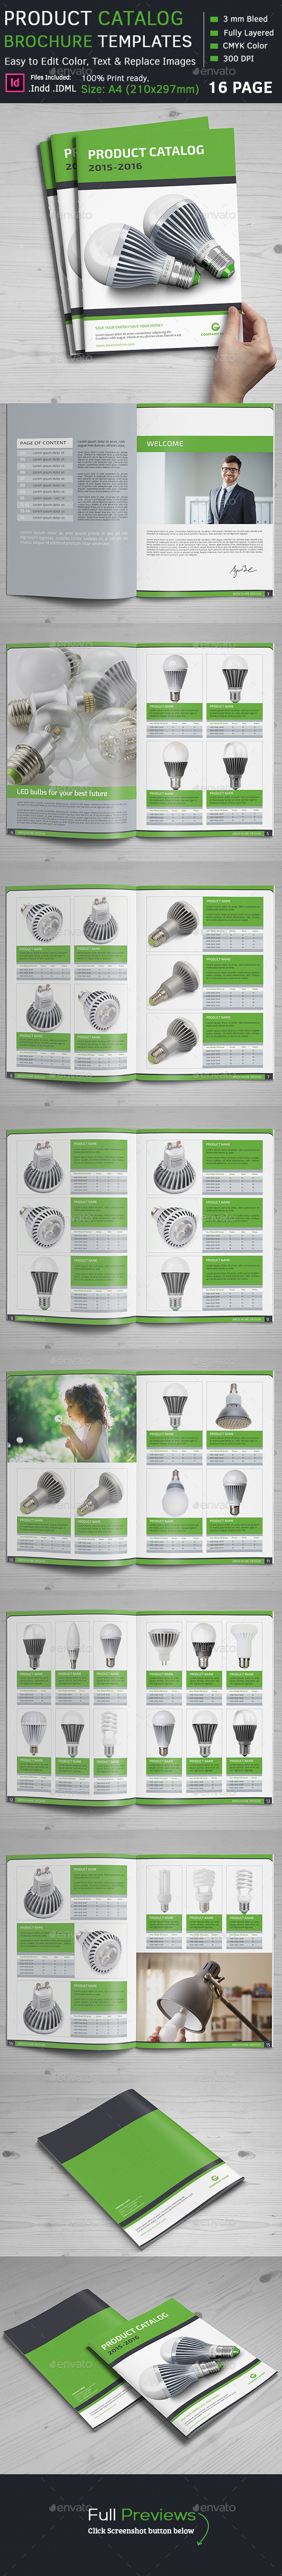 GraphicRiver Product Catalog 11630273